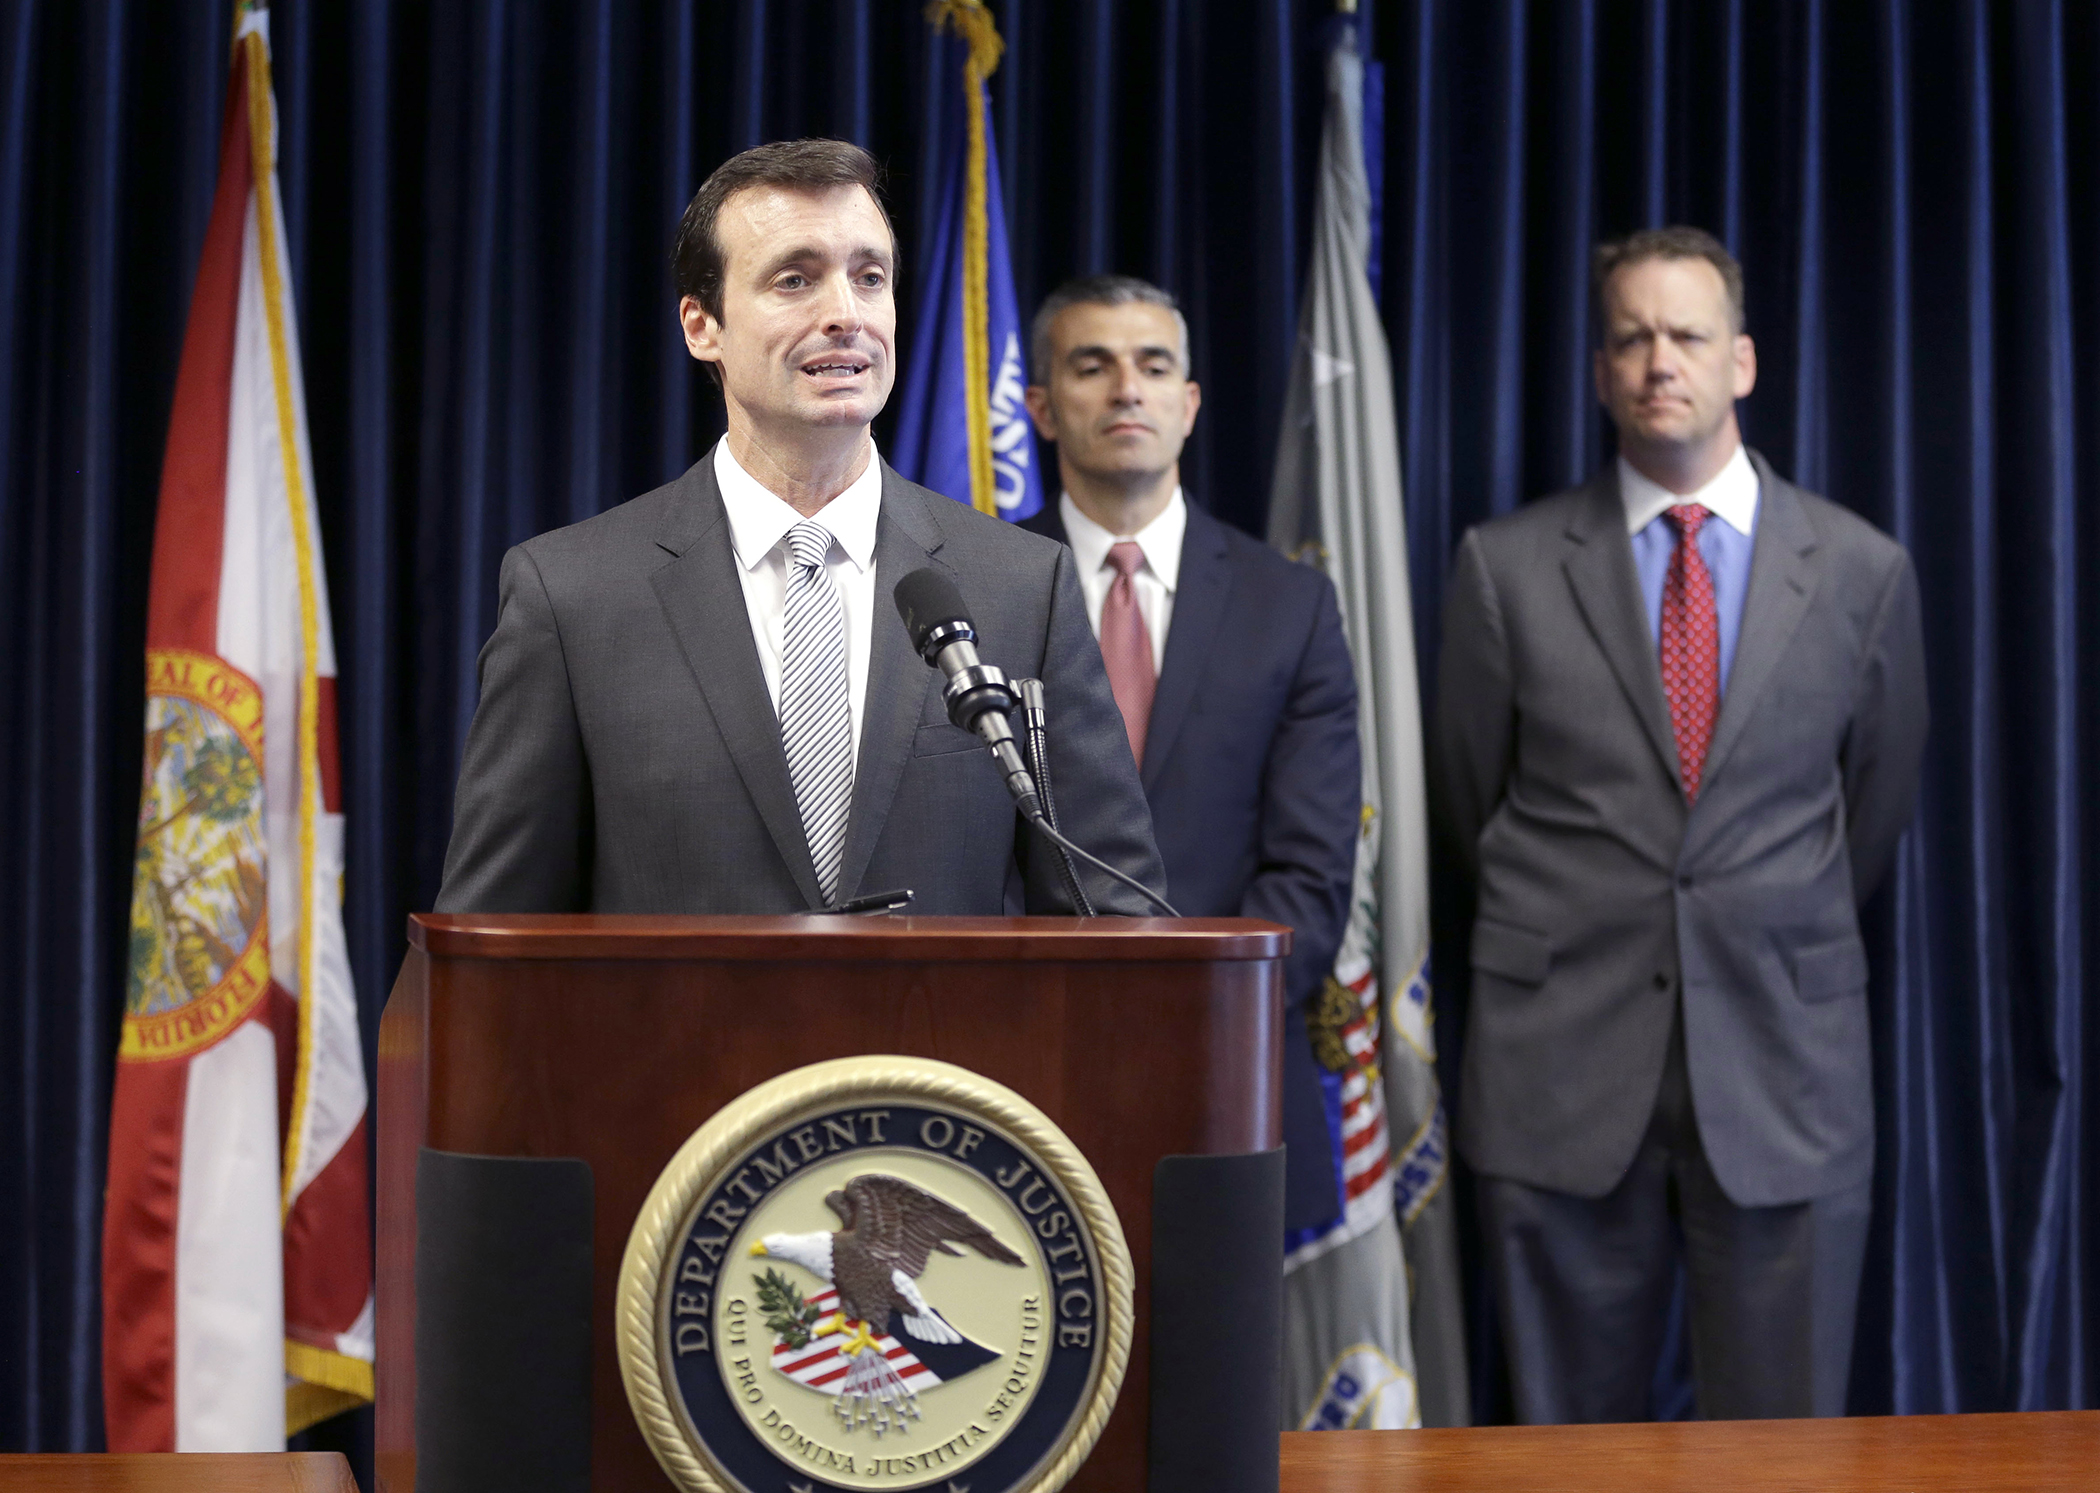 Wifredo Ferrer, left, U.S. Attorney for the Southern District of Florida, speaks during a news conference along with George Piro, center, Special Agent in Charge for the Federal Bureau of Investigation Miami and Tyler Smith, Assistant Inspector General of the U.S. Department of Health and Human Services, Office of Inspector General, Tuesday, May 13, 2014 in Miami.